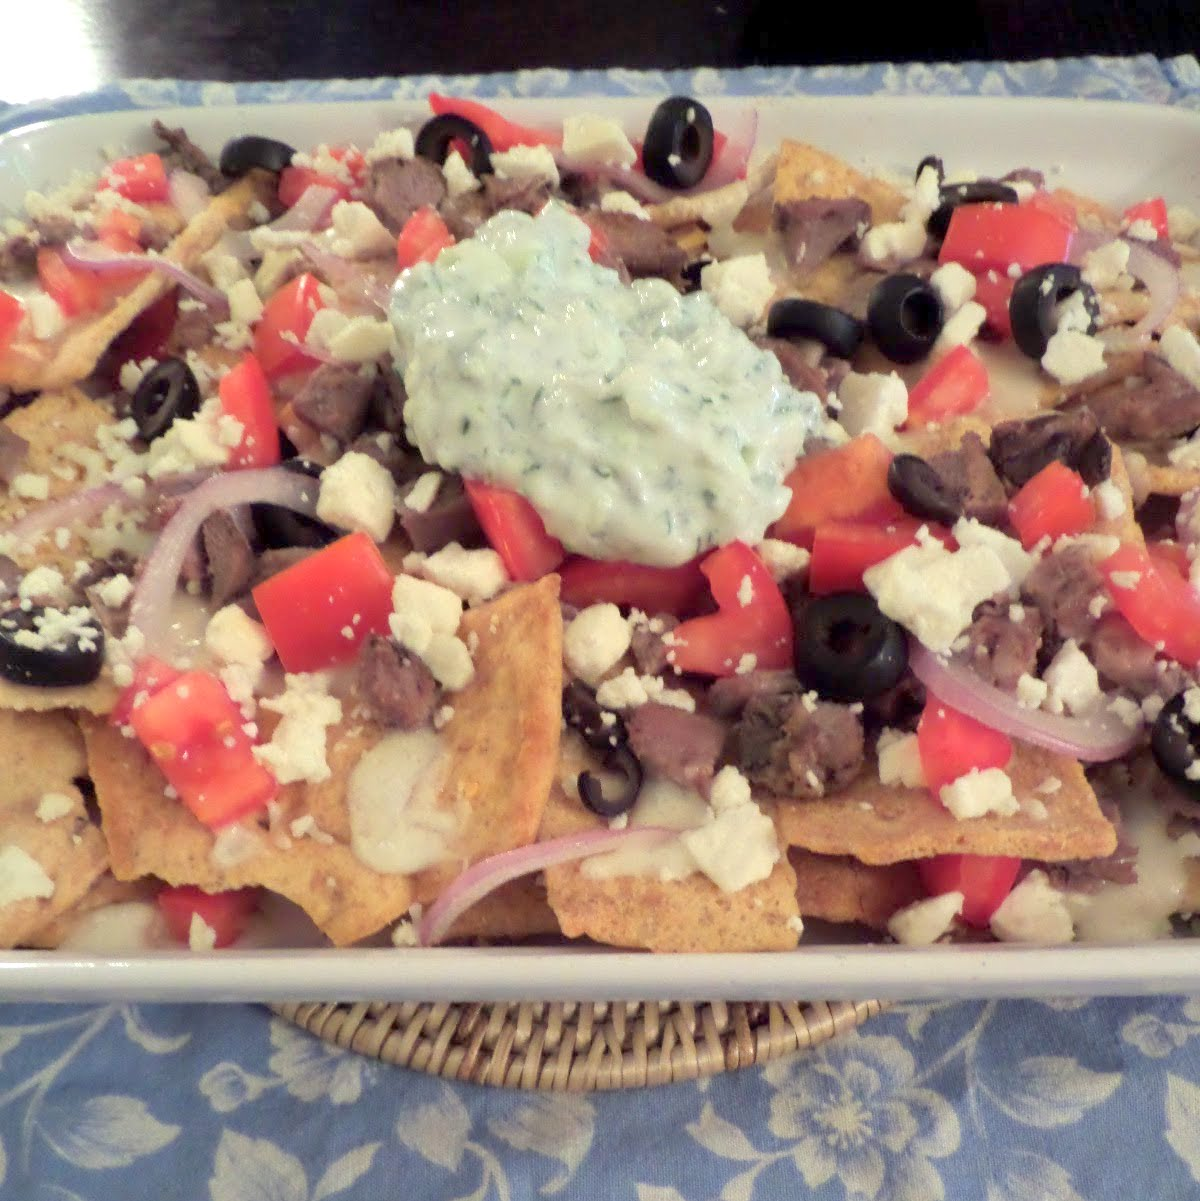 Greek Nachos:  Nachos with a Greek twist.  Pita chips topped with lamb, olives, tomatoes, and feta.